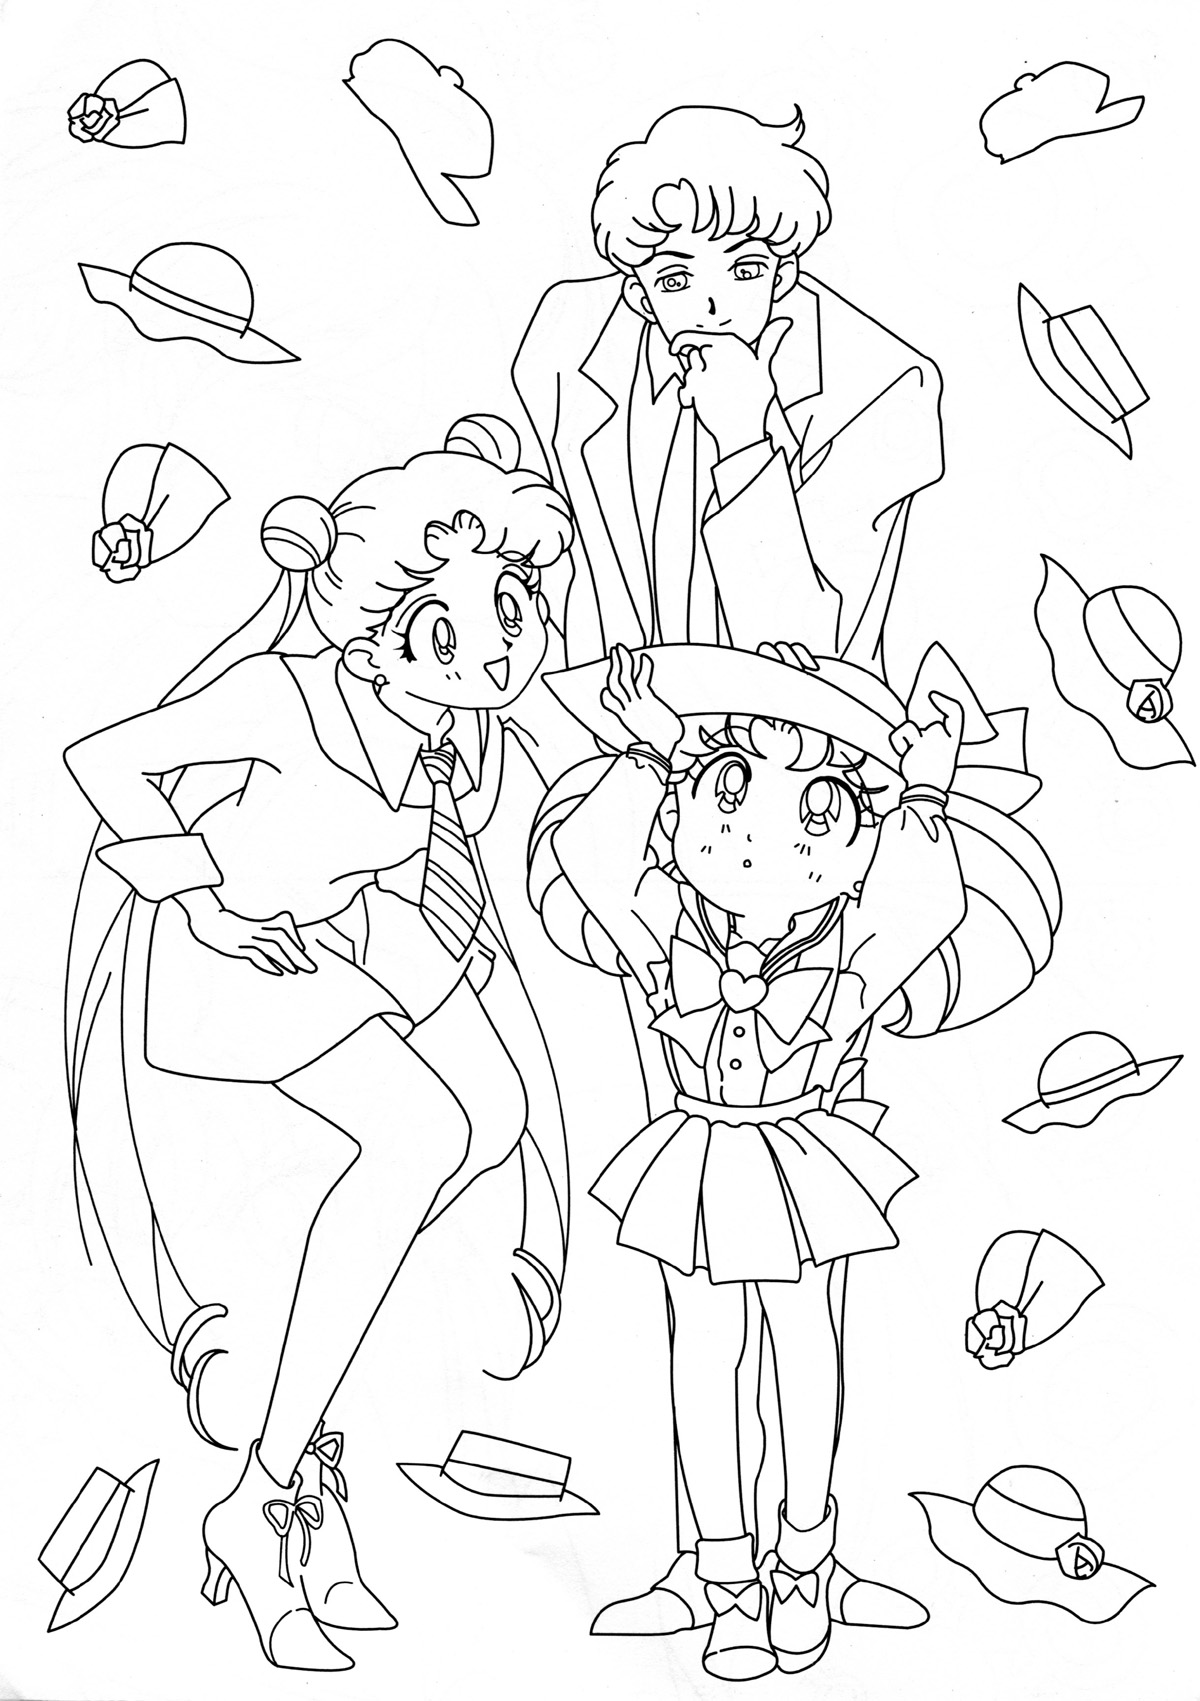 1000 images about coloring pages on pinterest sailor for Sailor moon group coloring pages